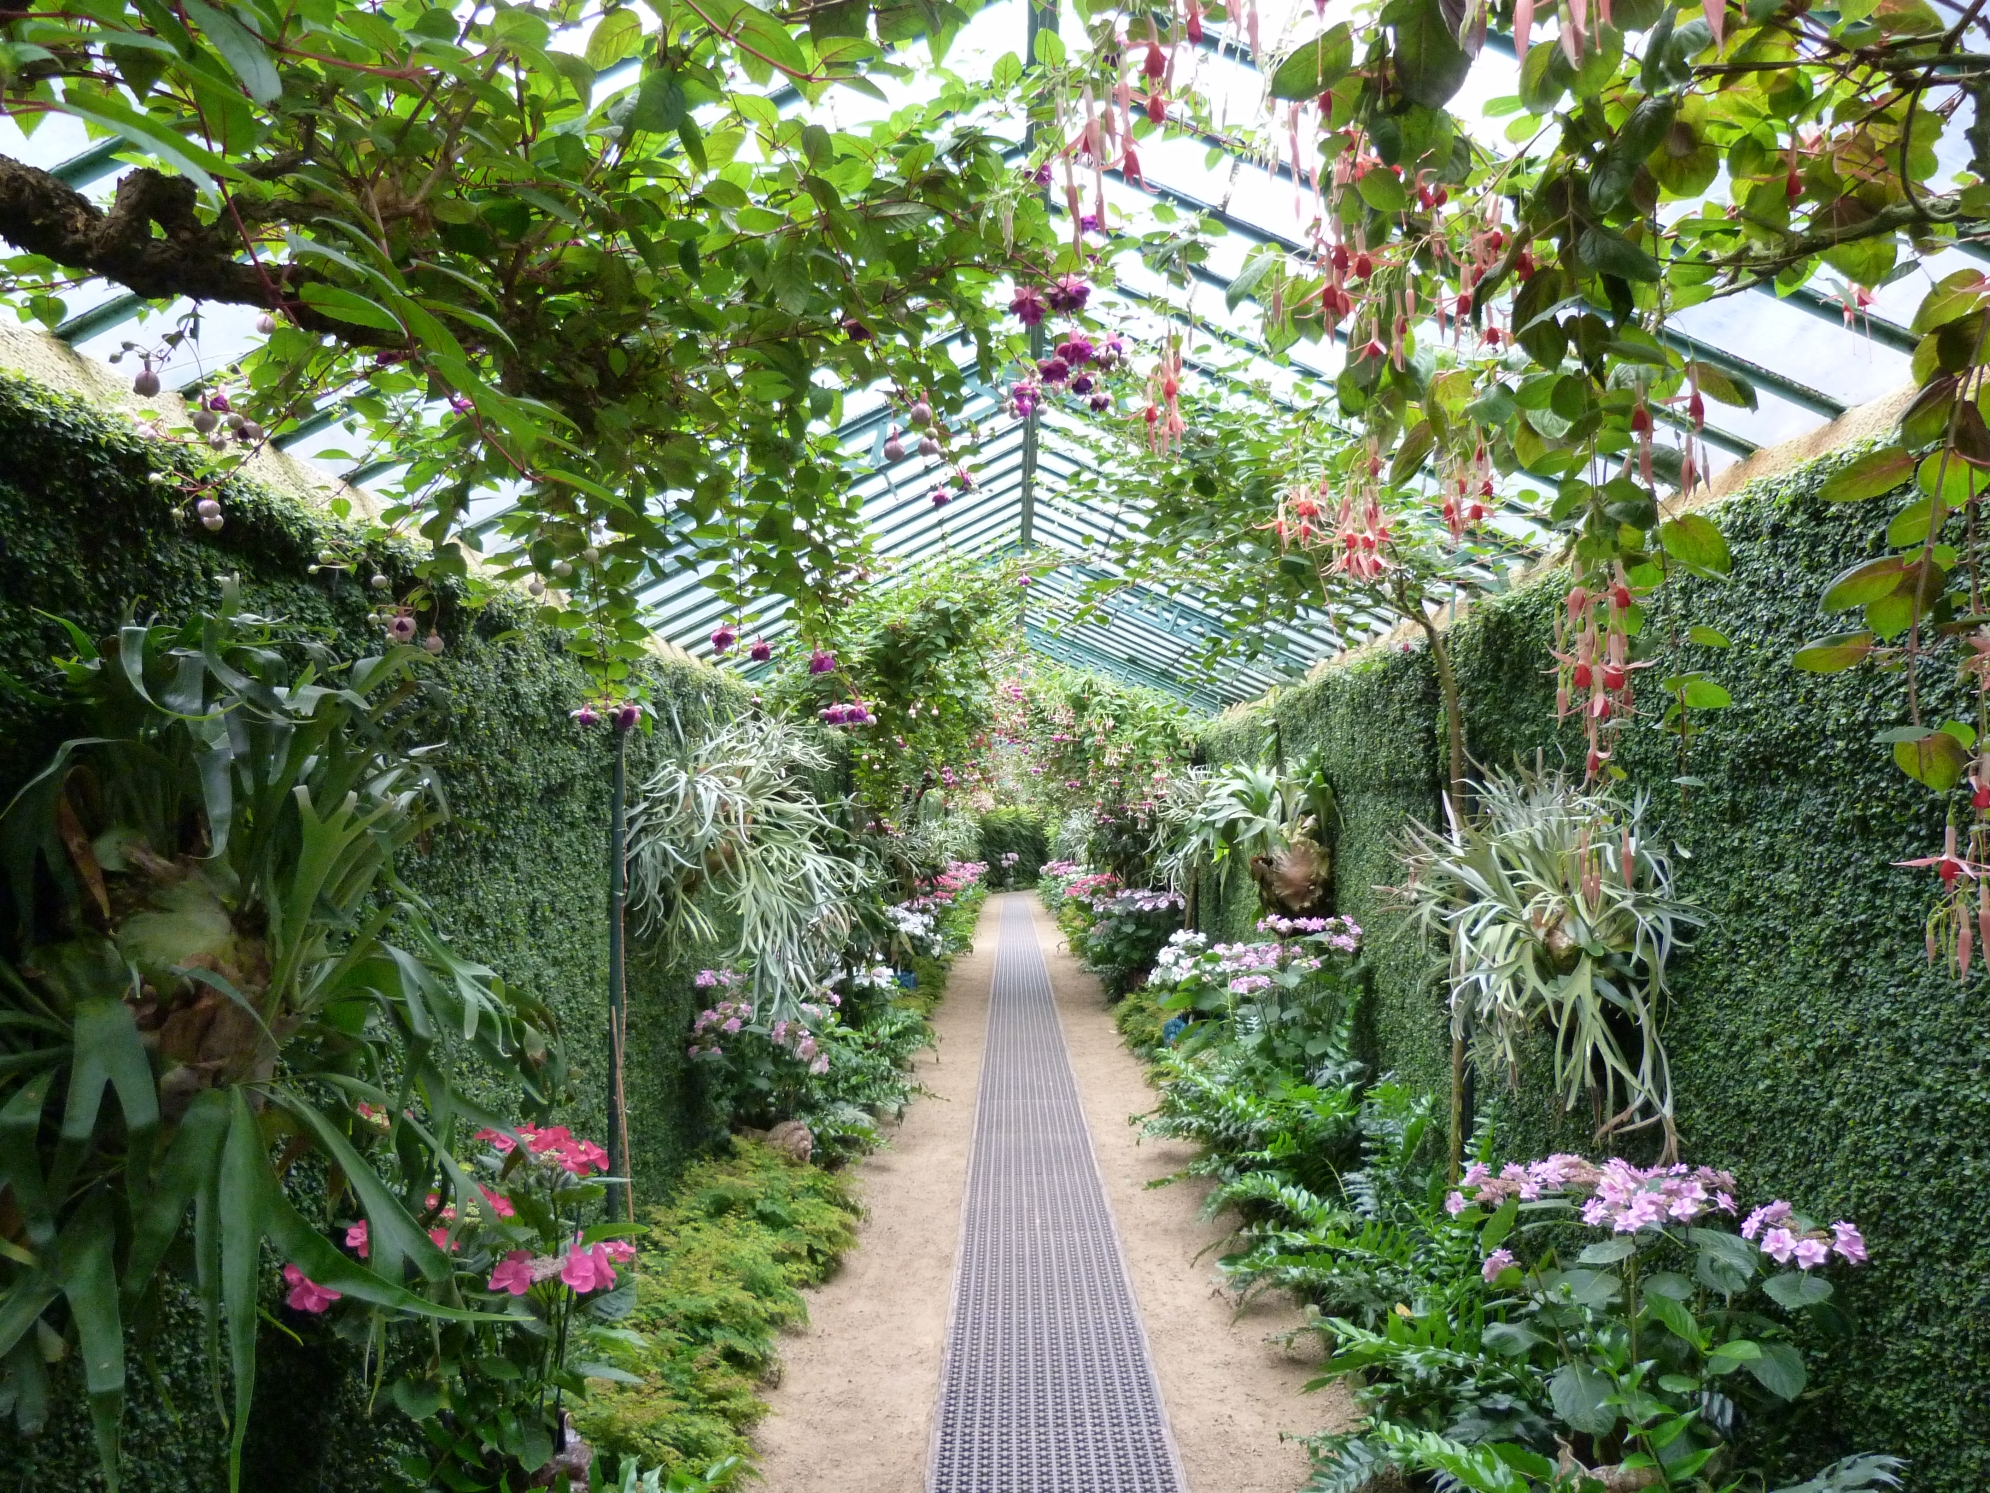 an image of greenhouses File:Laeken Royal Greenhouses